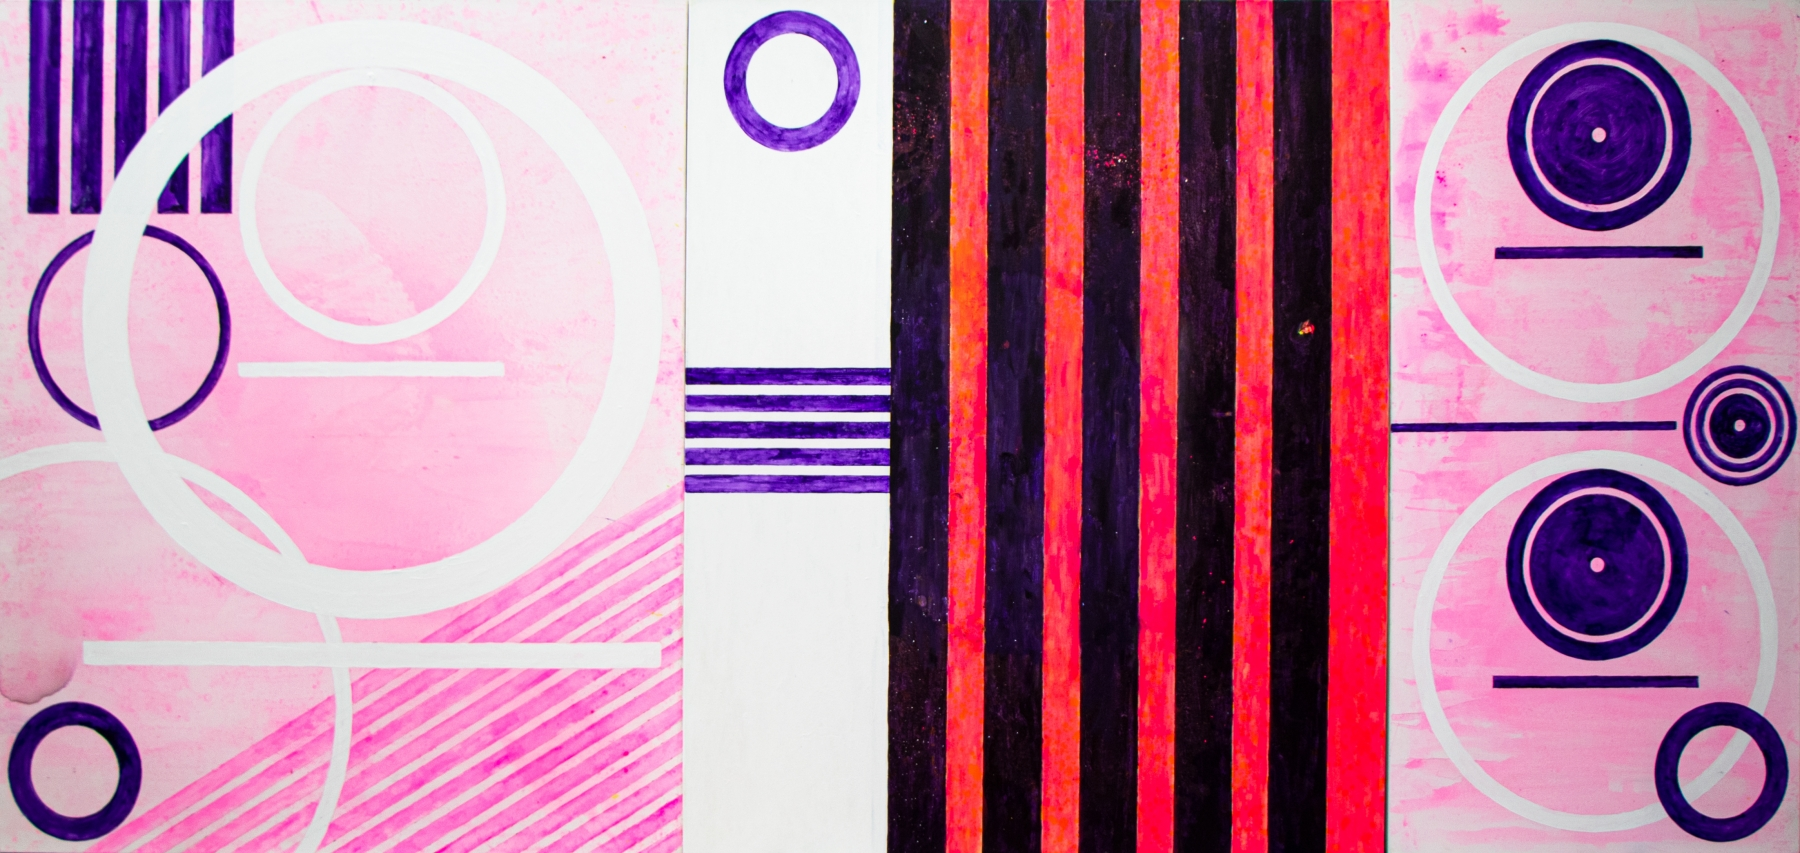 J. Steven Manolis, Miami Joy (Triptych), 2020, Acrylic painting on canvas, 72 x 156 inches, Geometric Abstract Art, Miami Wall art For sale at Manolis Projects Art Gallery, Miami Fl